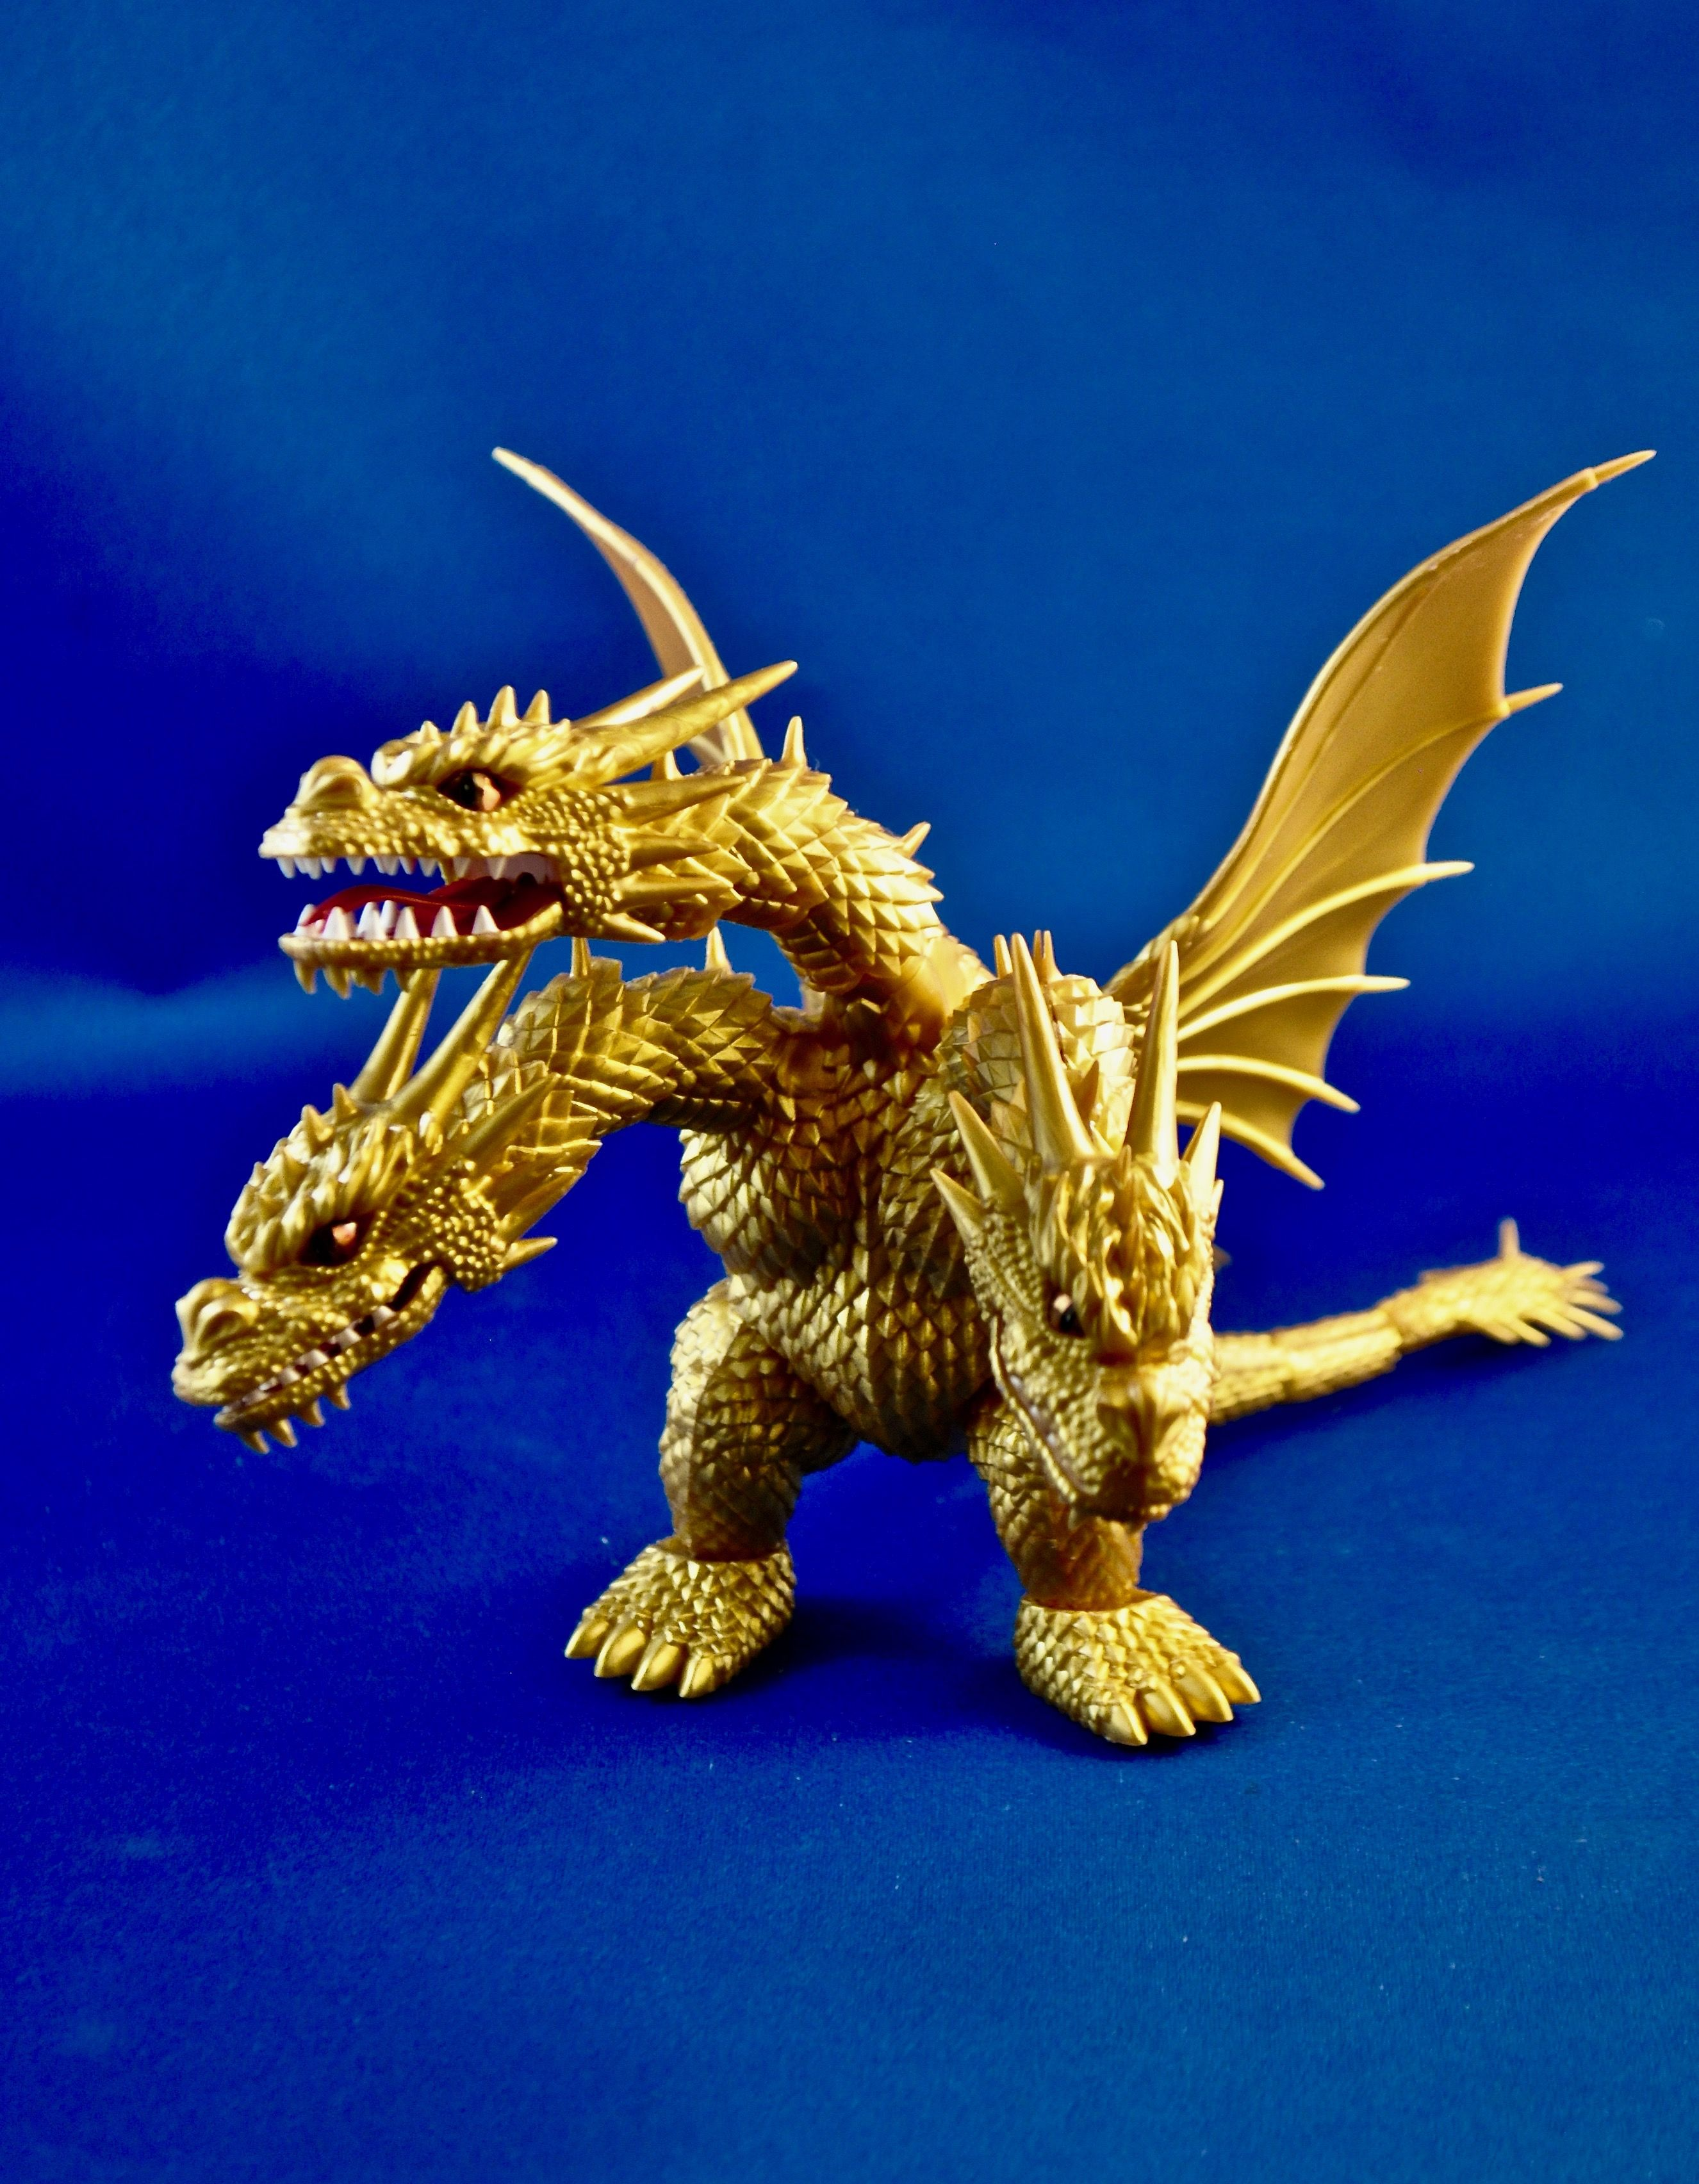 Fujimi King Ghidorah - this is straight from the box ...